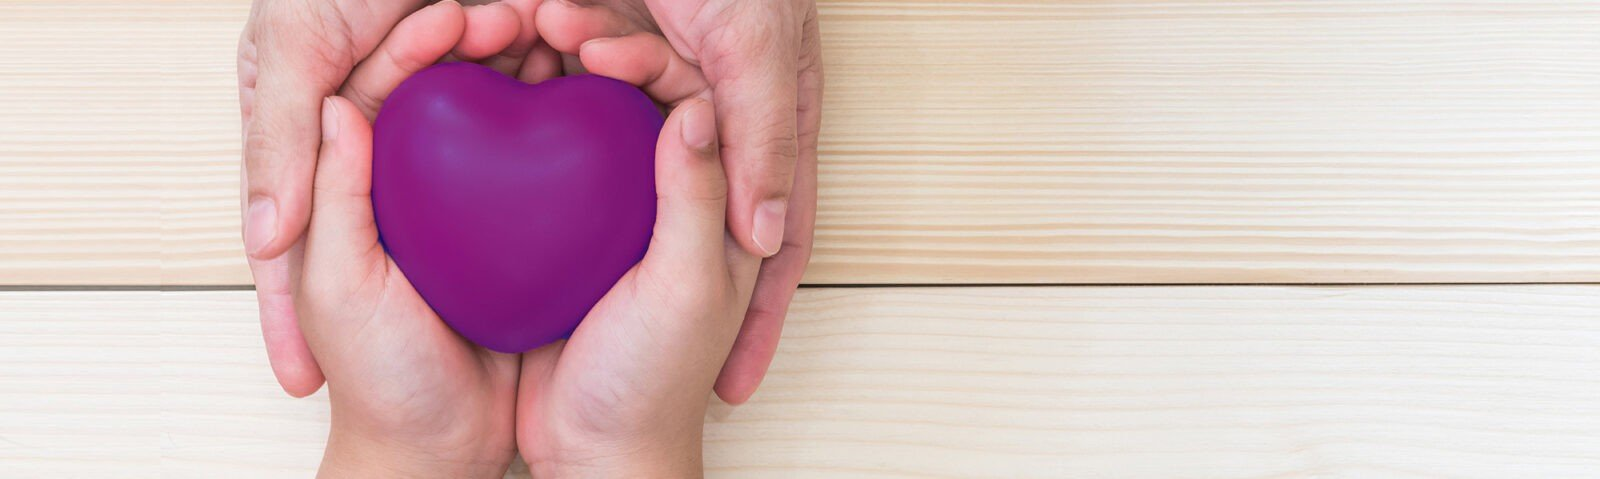 A young hand holding a purple heart, while an older hand holds onto both